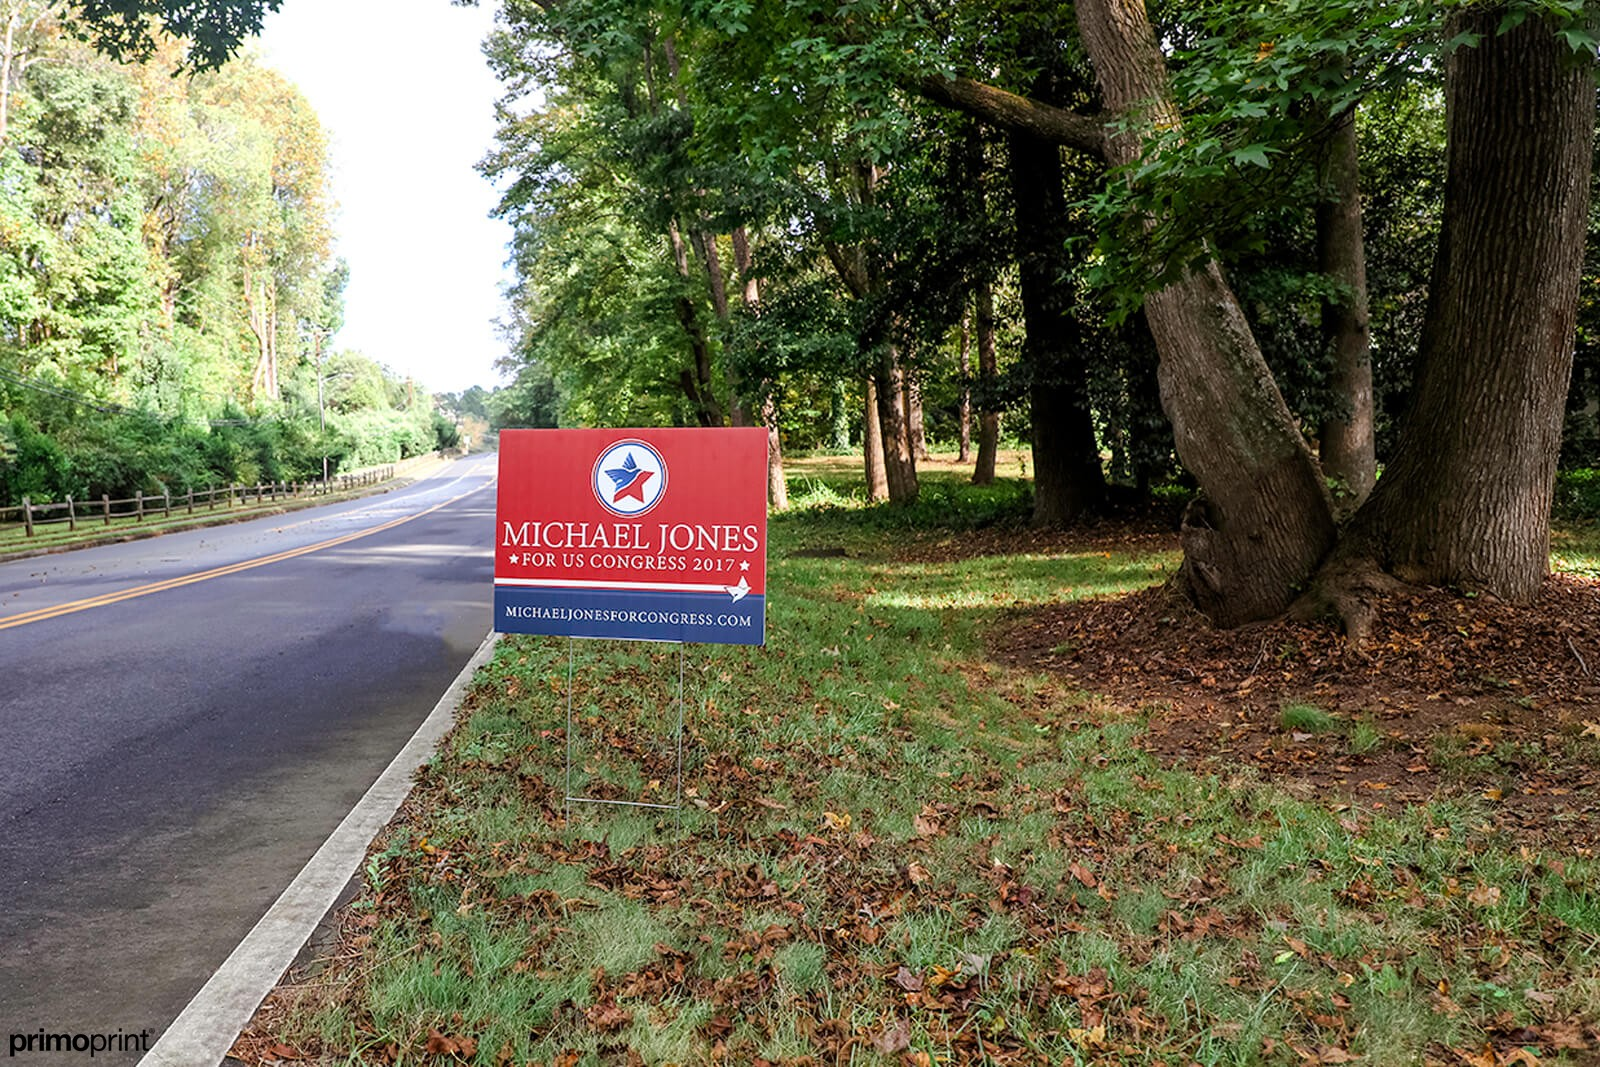 Custom 4mm coroplast campaign yard sign designed and printed by Primoprint.